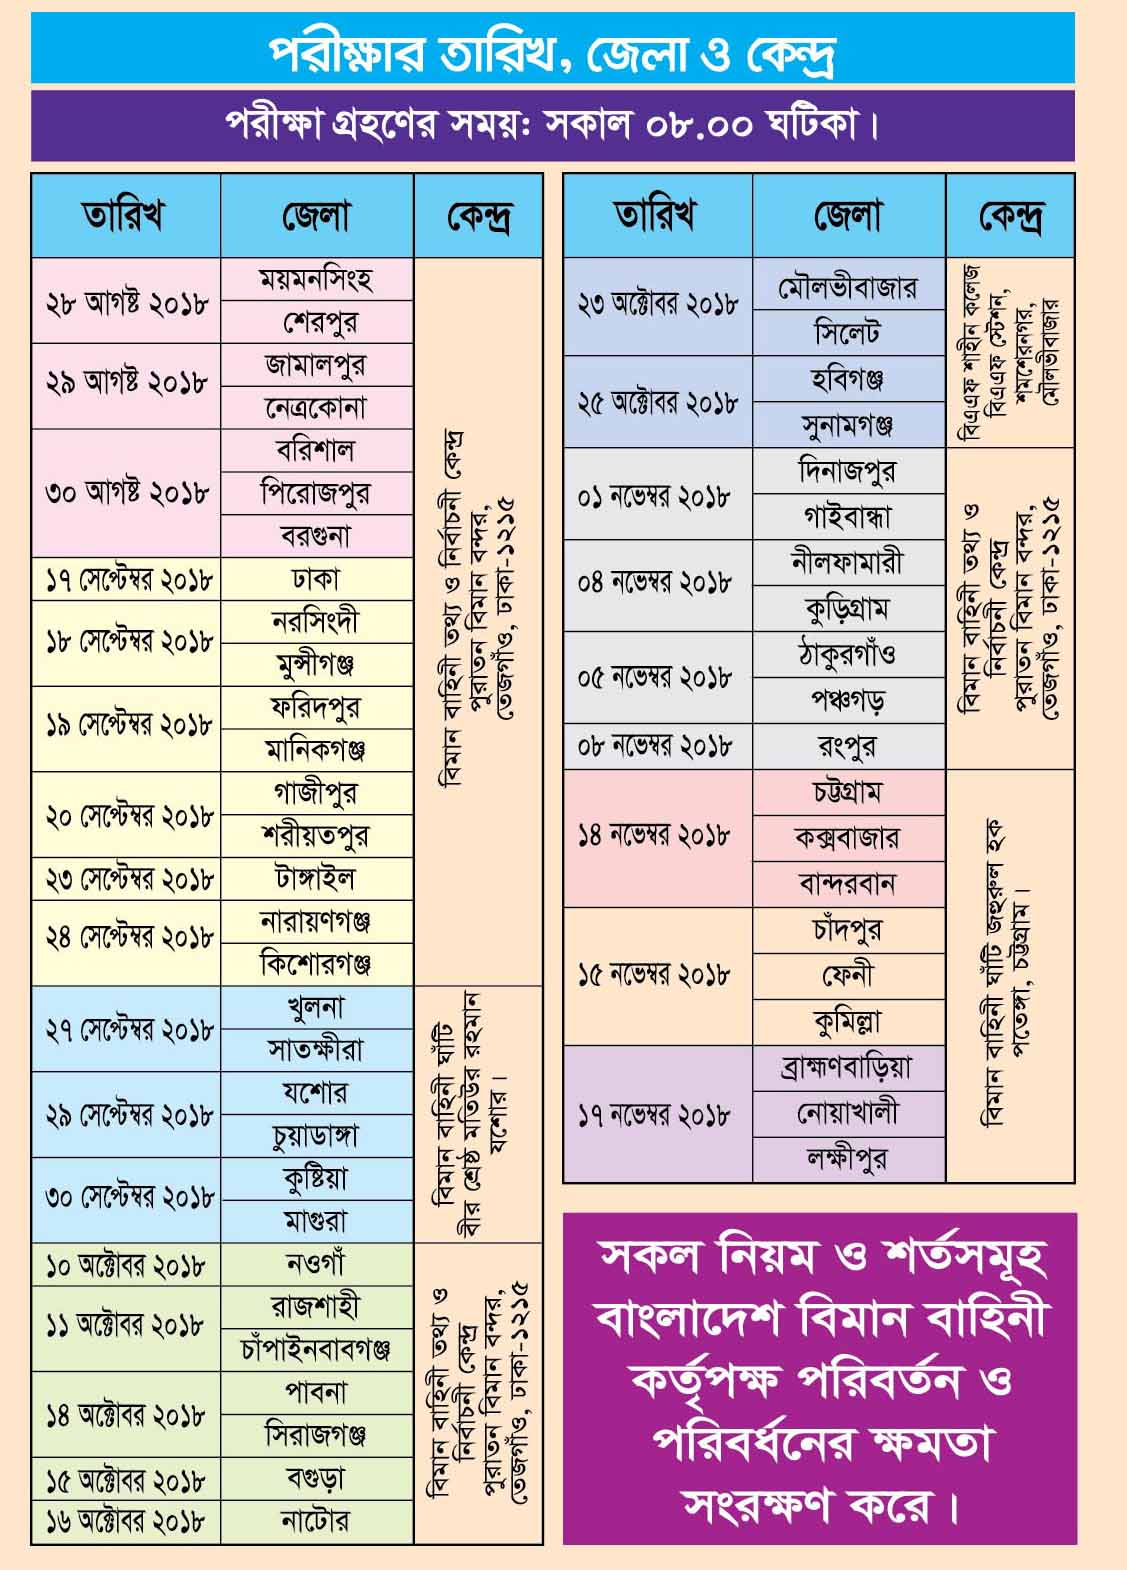 Bangladesh Air Force MODC Recruitment Exam Center, Date and Time